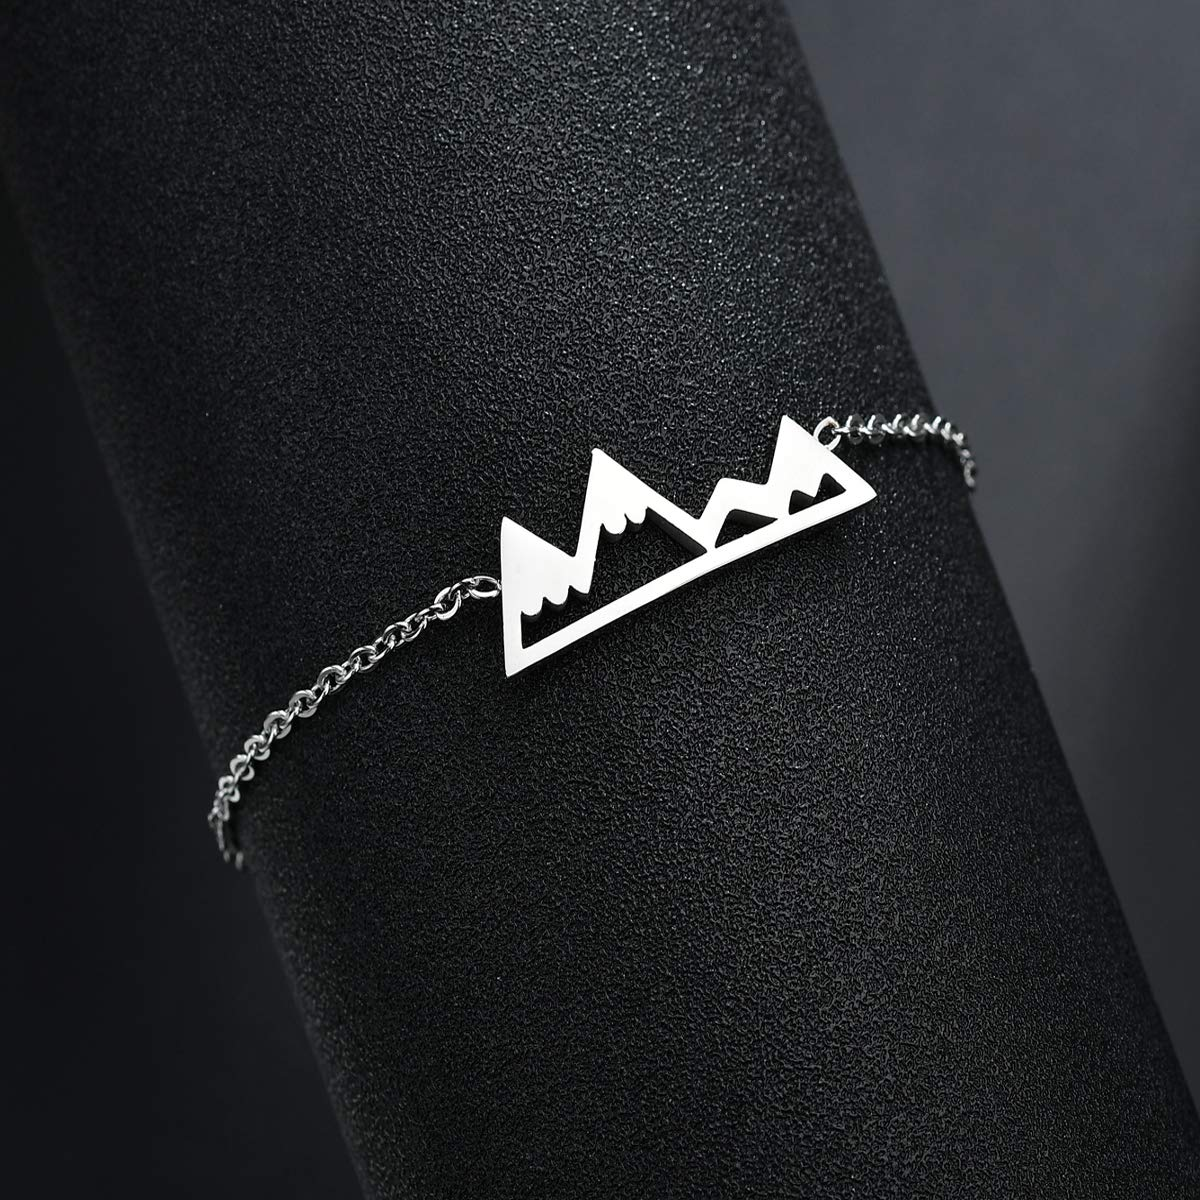 RUNXINTD Mountain Range Jewelr Mountain Inspirational Chain Bracelet Camping Gift for Mountaineer Outdoor Lovers Gift